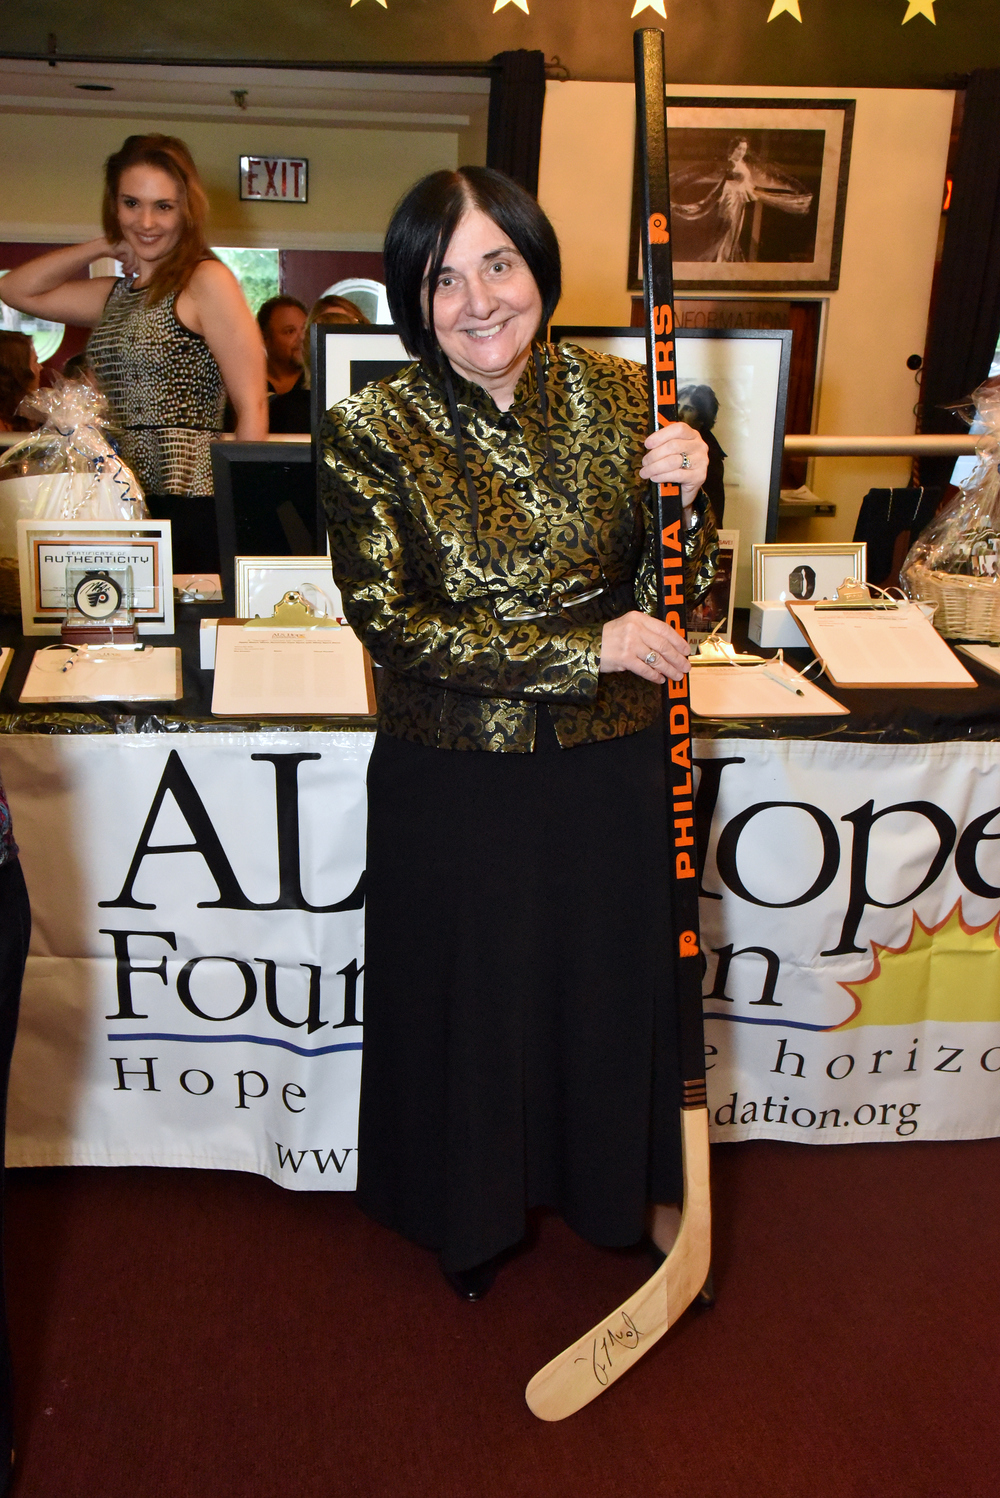 Dr. Terry Heiman-Patterson poses with auction items; photo credit: Robert E. Patterson